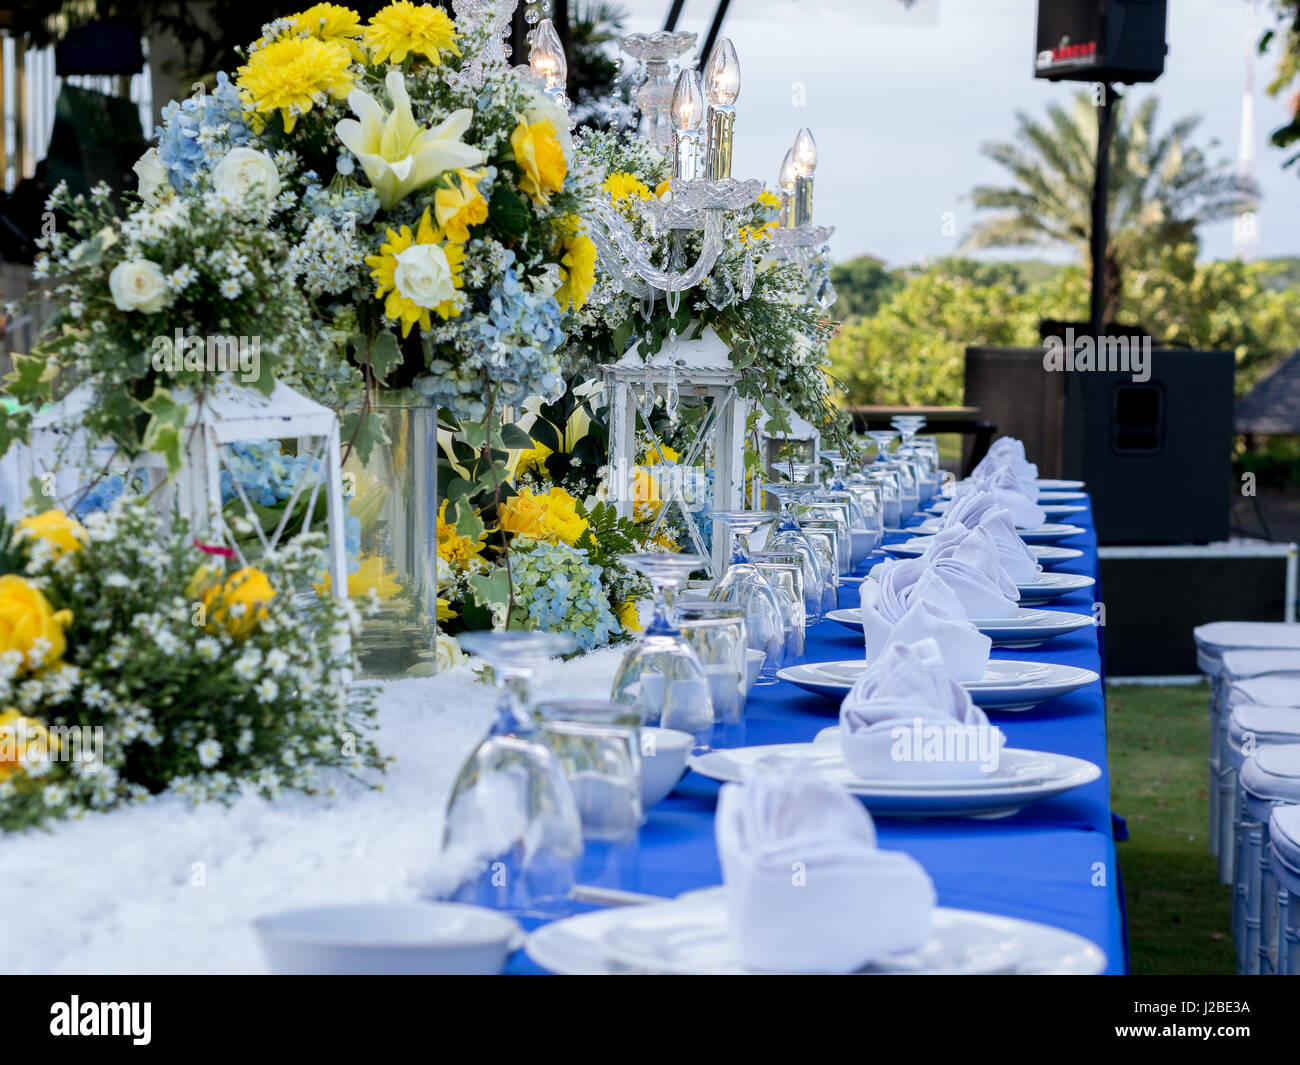 Banquet Table Set for Wedding - Stock Image